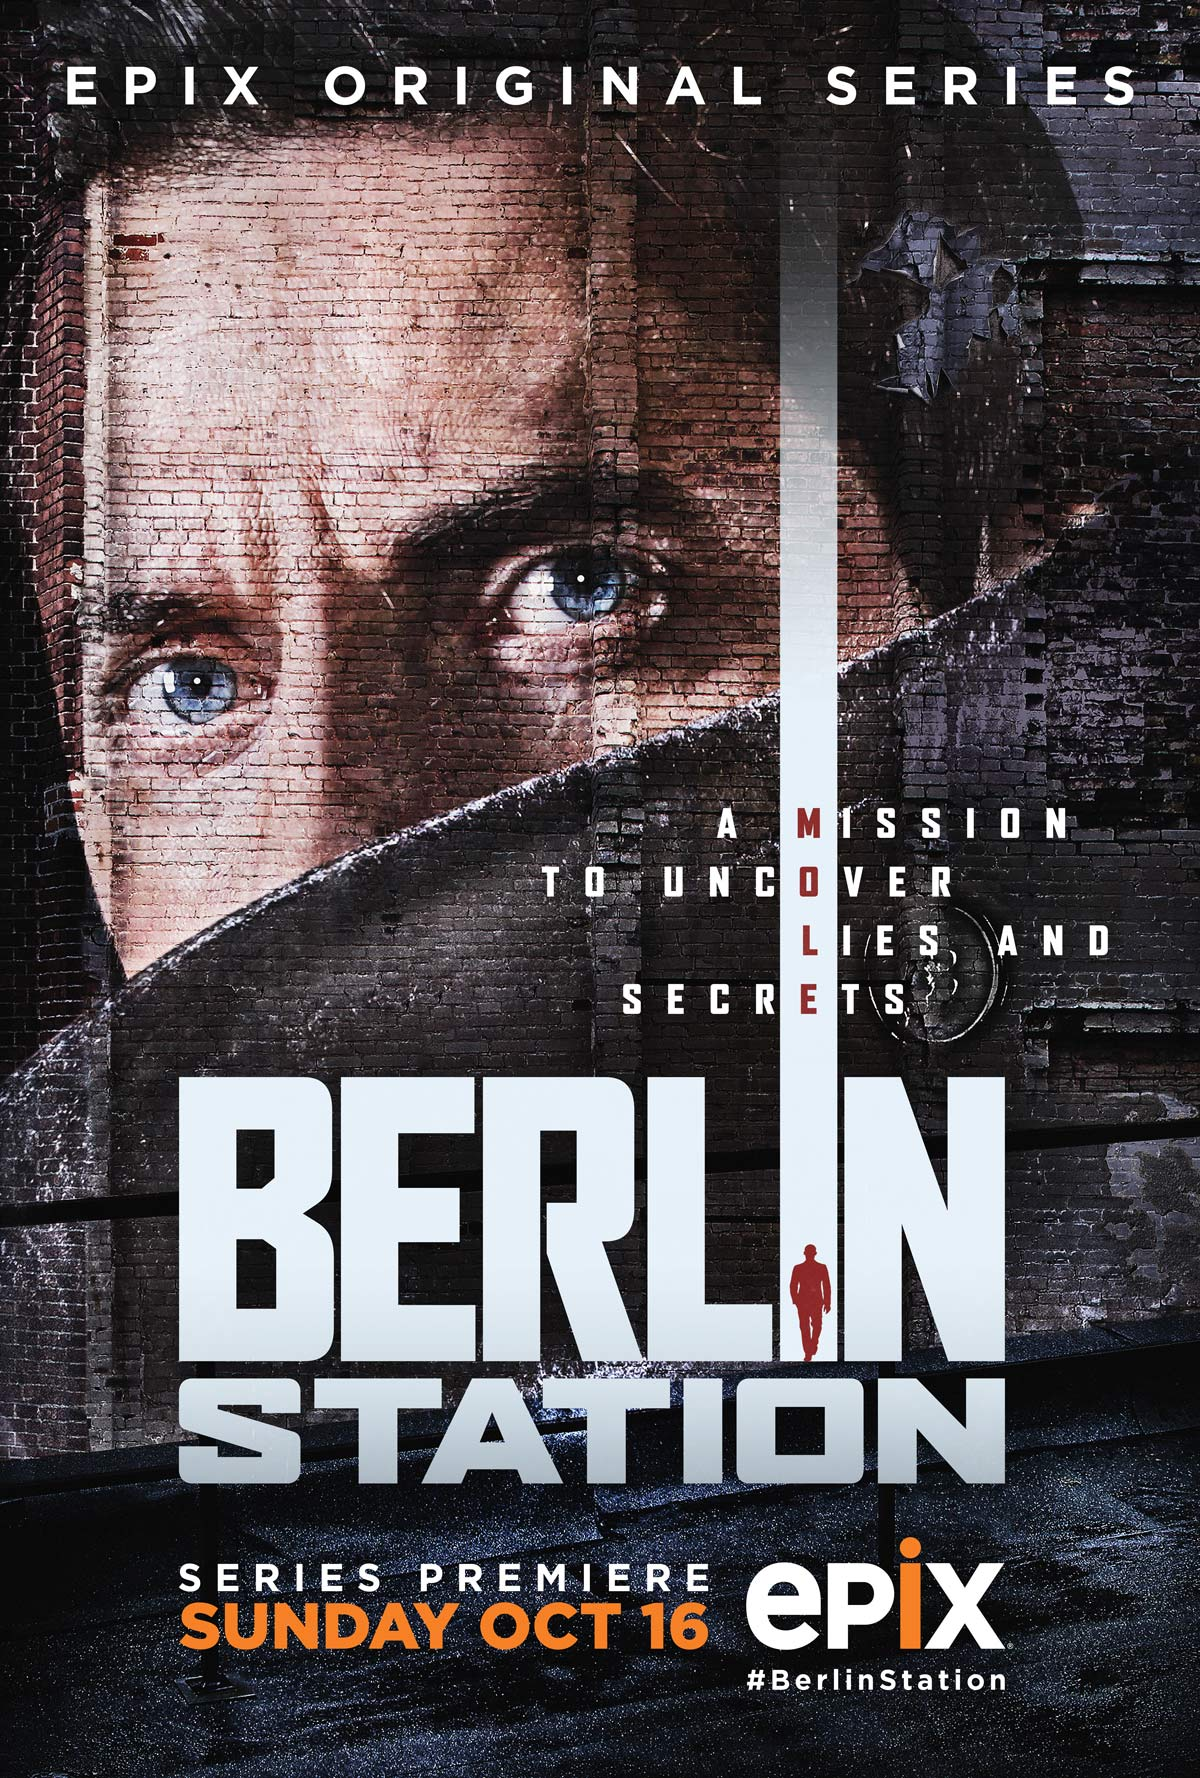 Language In 45 And 47 Stella Street: Berlin Station (2016) S03E10